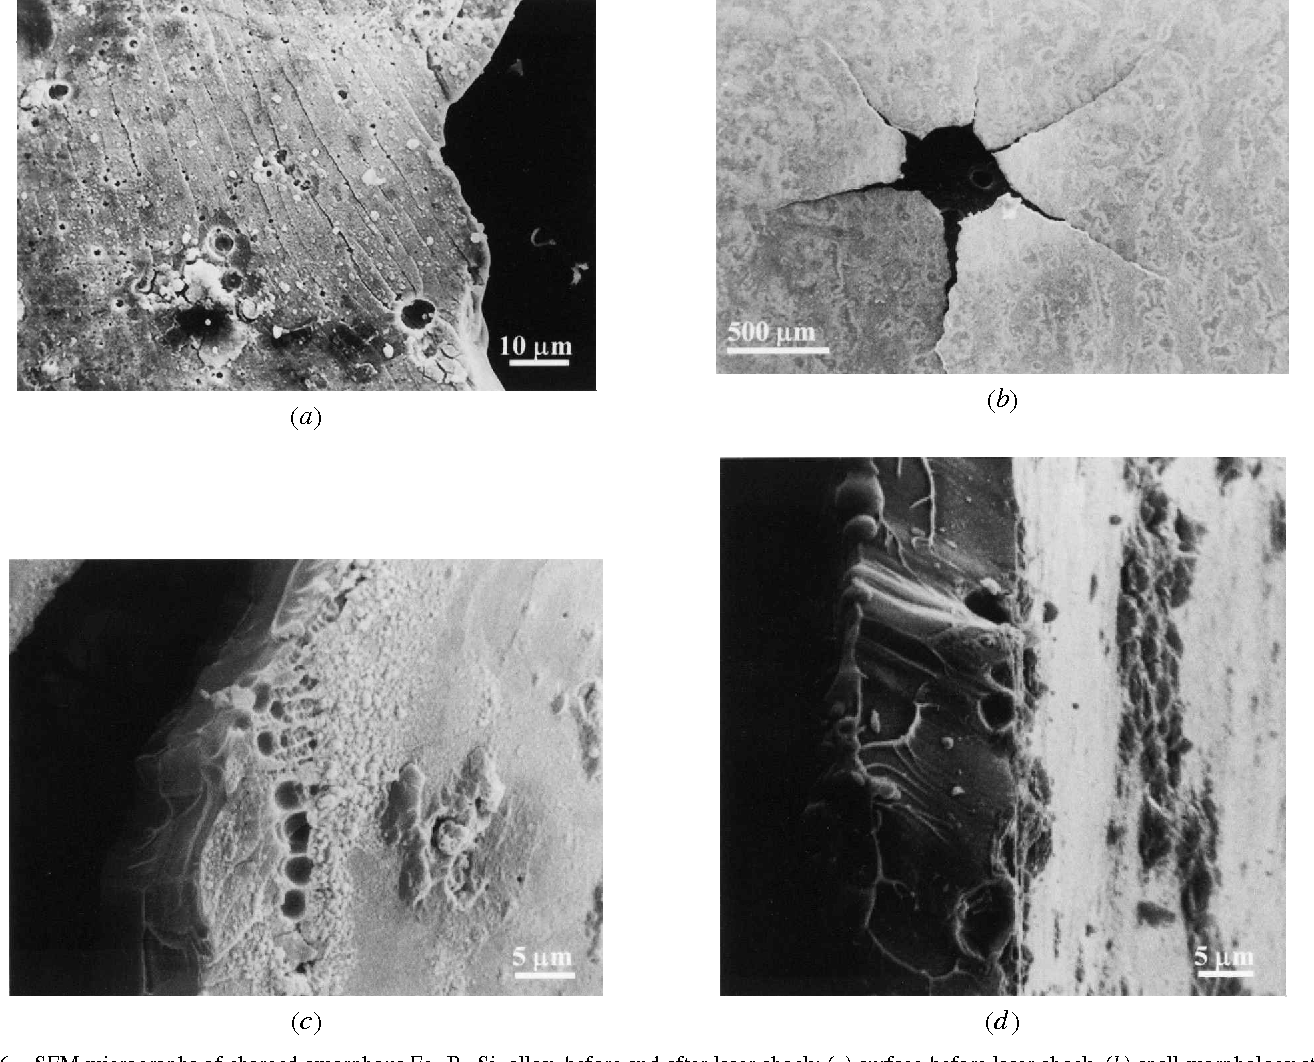 Fig. 6—SEM micrographs of charged amorphous Fe80B11Si9 alloy, before and after laser shock: (a) surface before laser shock, (b) spall morphology at the rear surface, (c) voids coalescence near the fracture surface, and (d ) vein pattern and voids on the fracture surface.